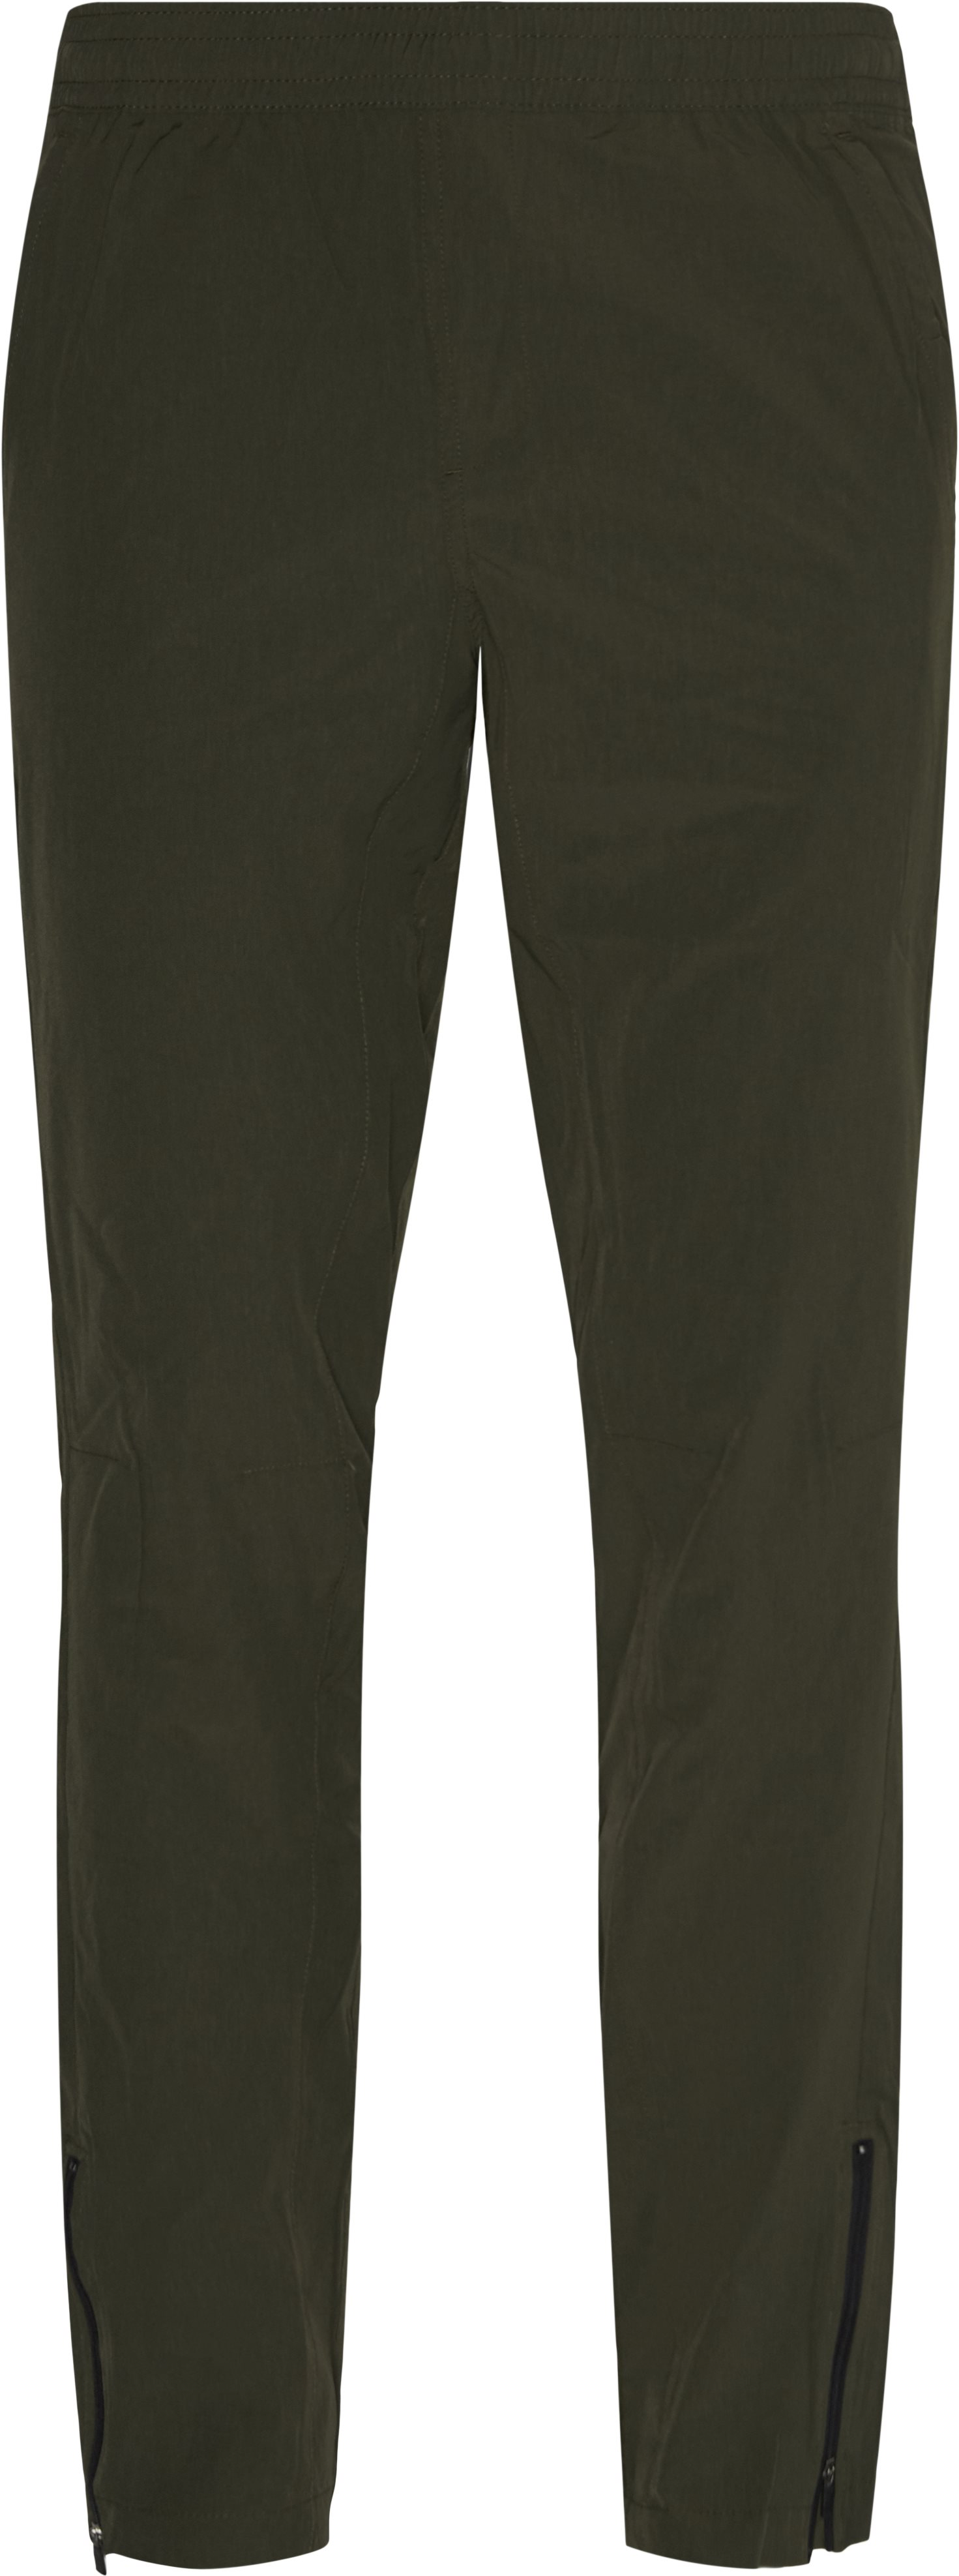 Gretsky Track Pants - Bukser - Tailored fit - Army